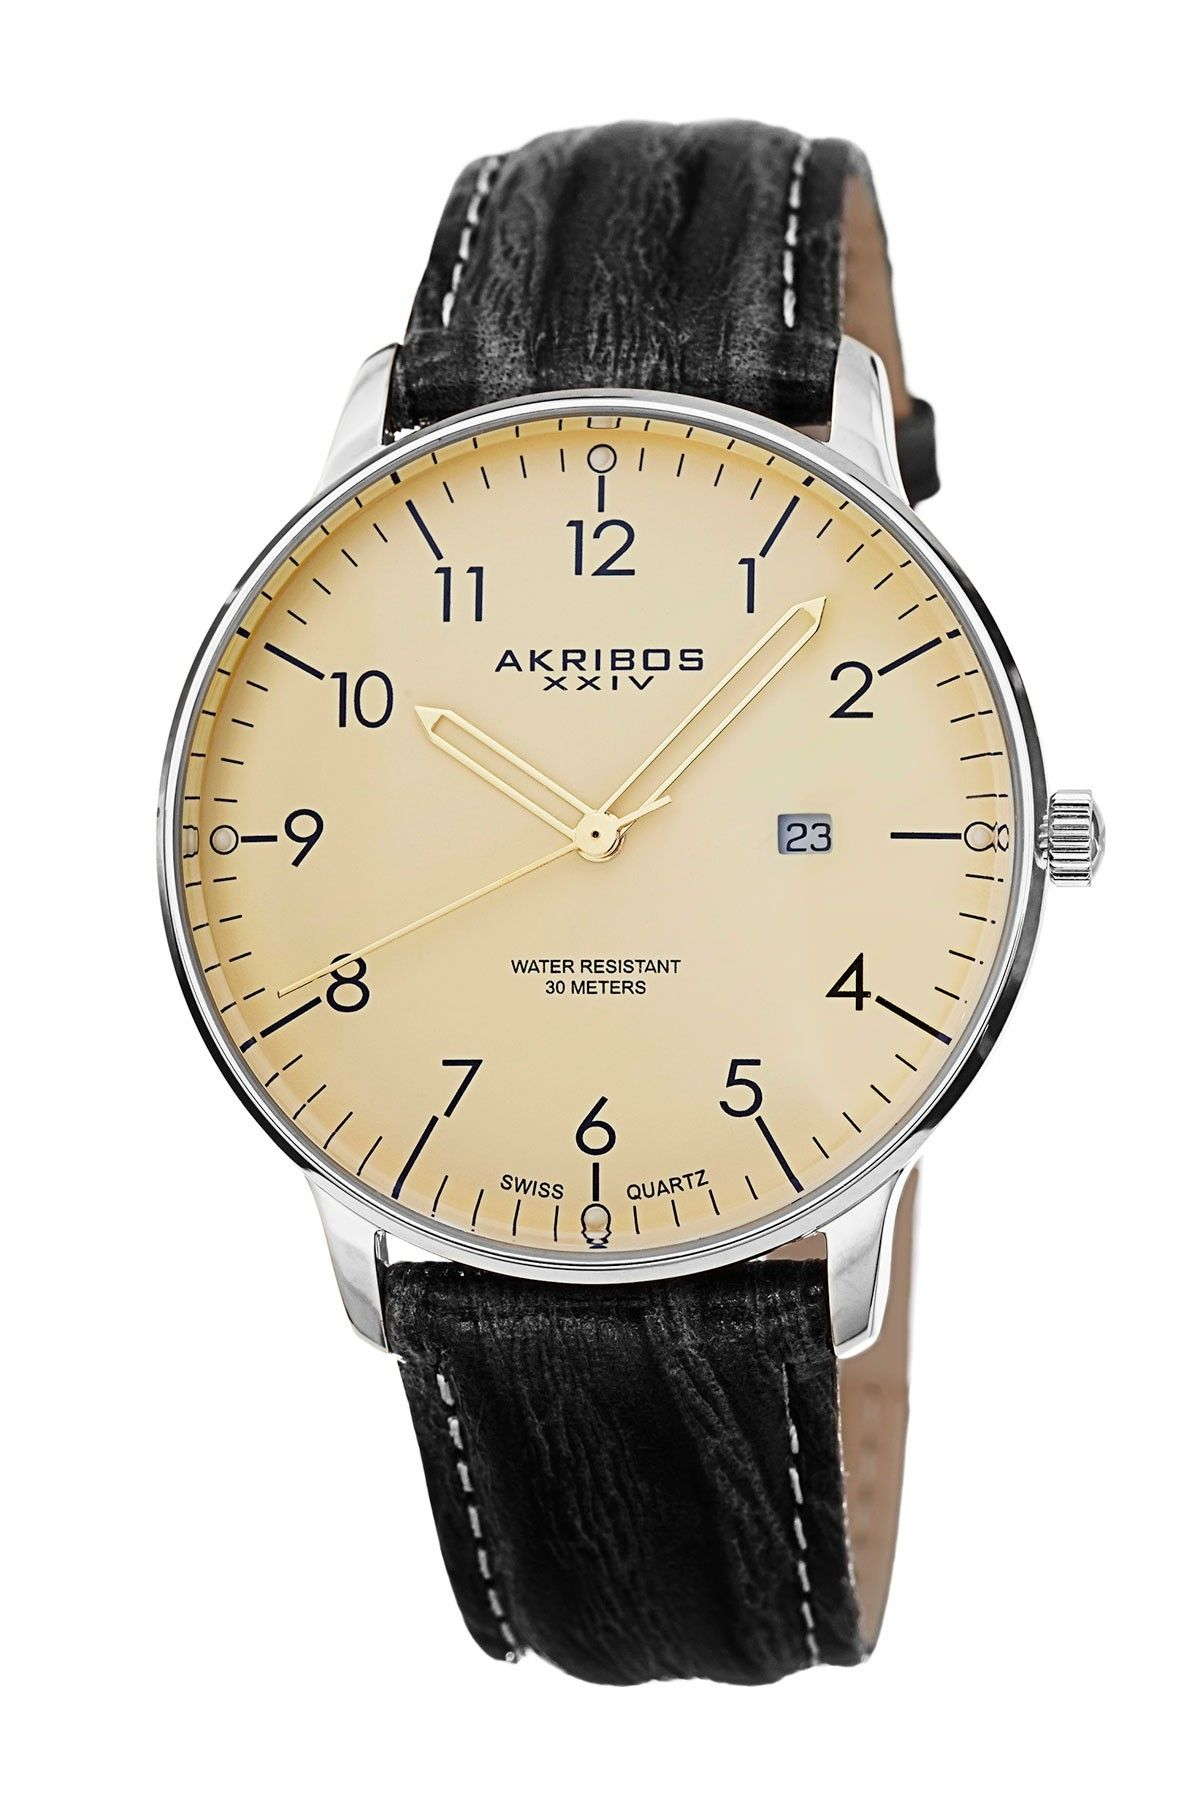 5cf9a40910f Akribos XXIV Men s Date Swiss Quartz Watch